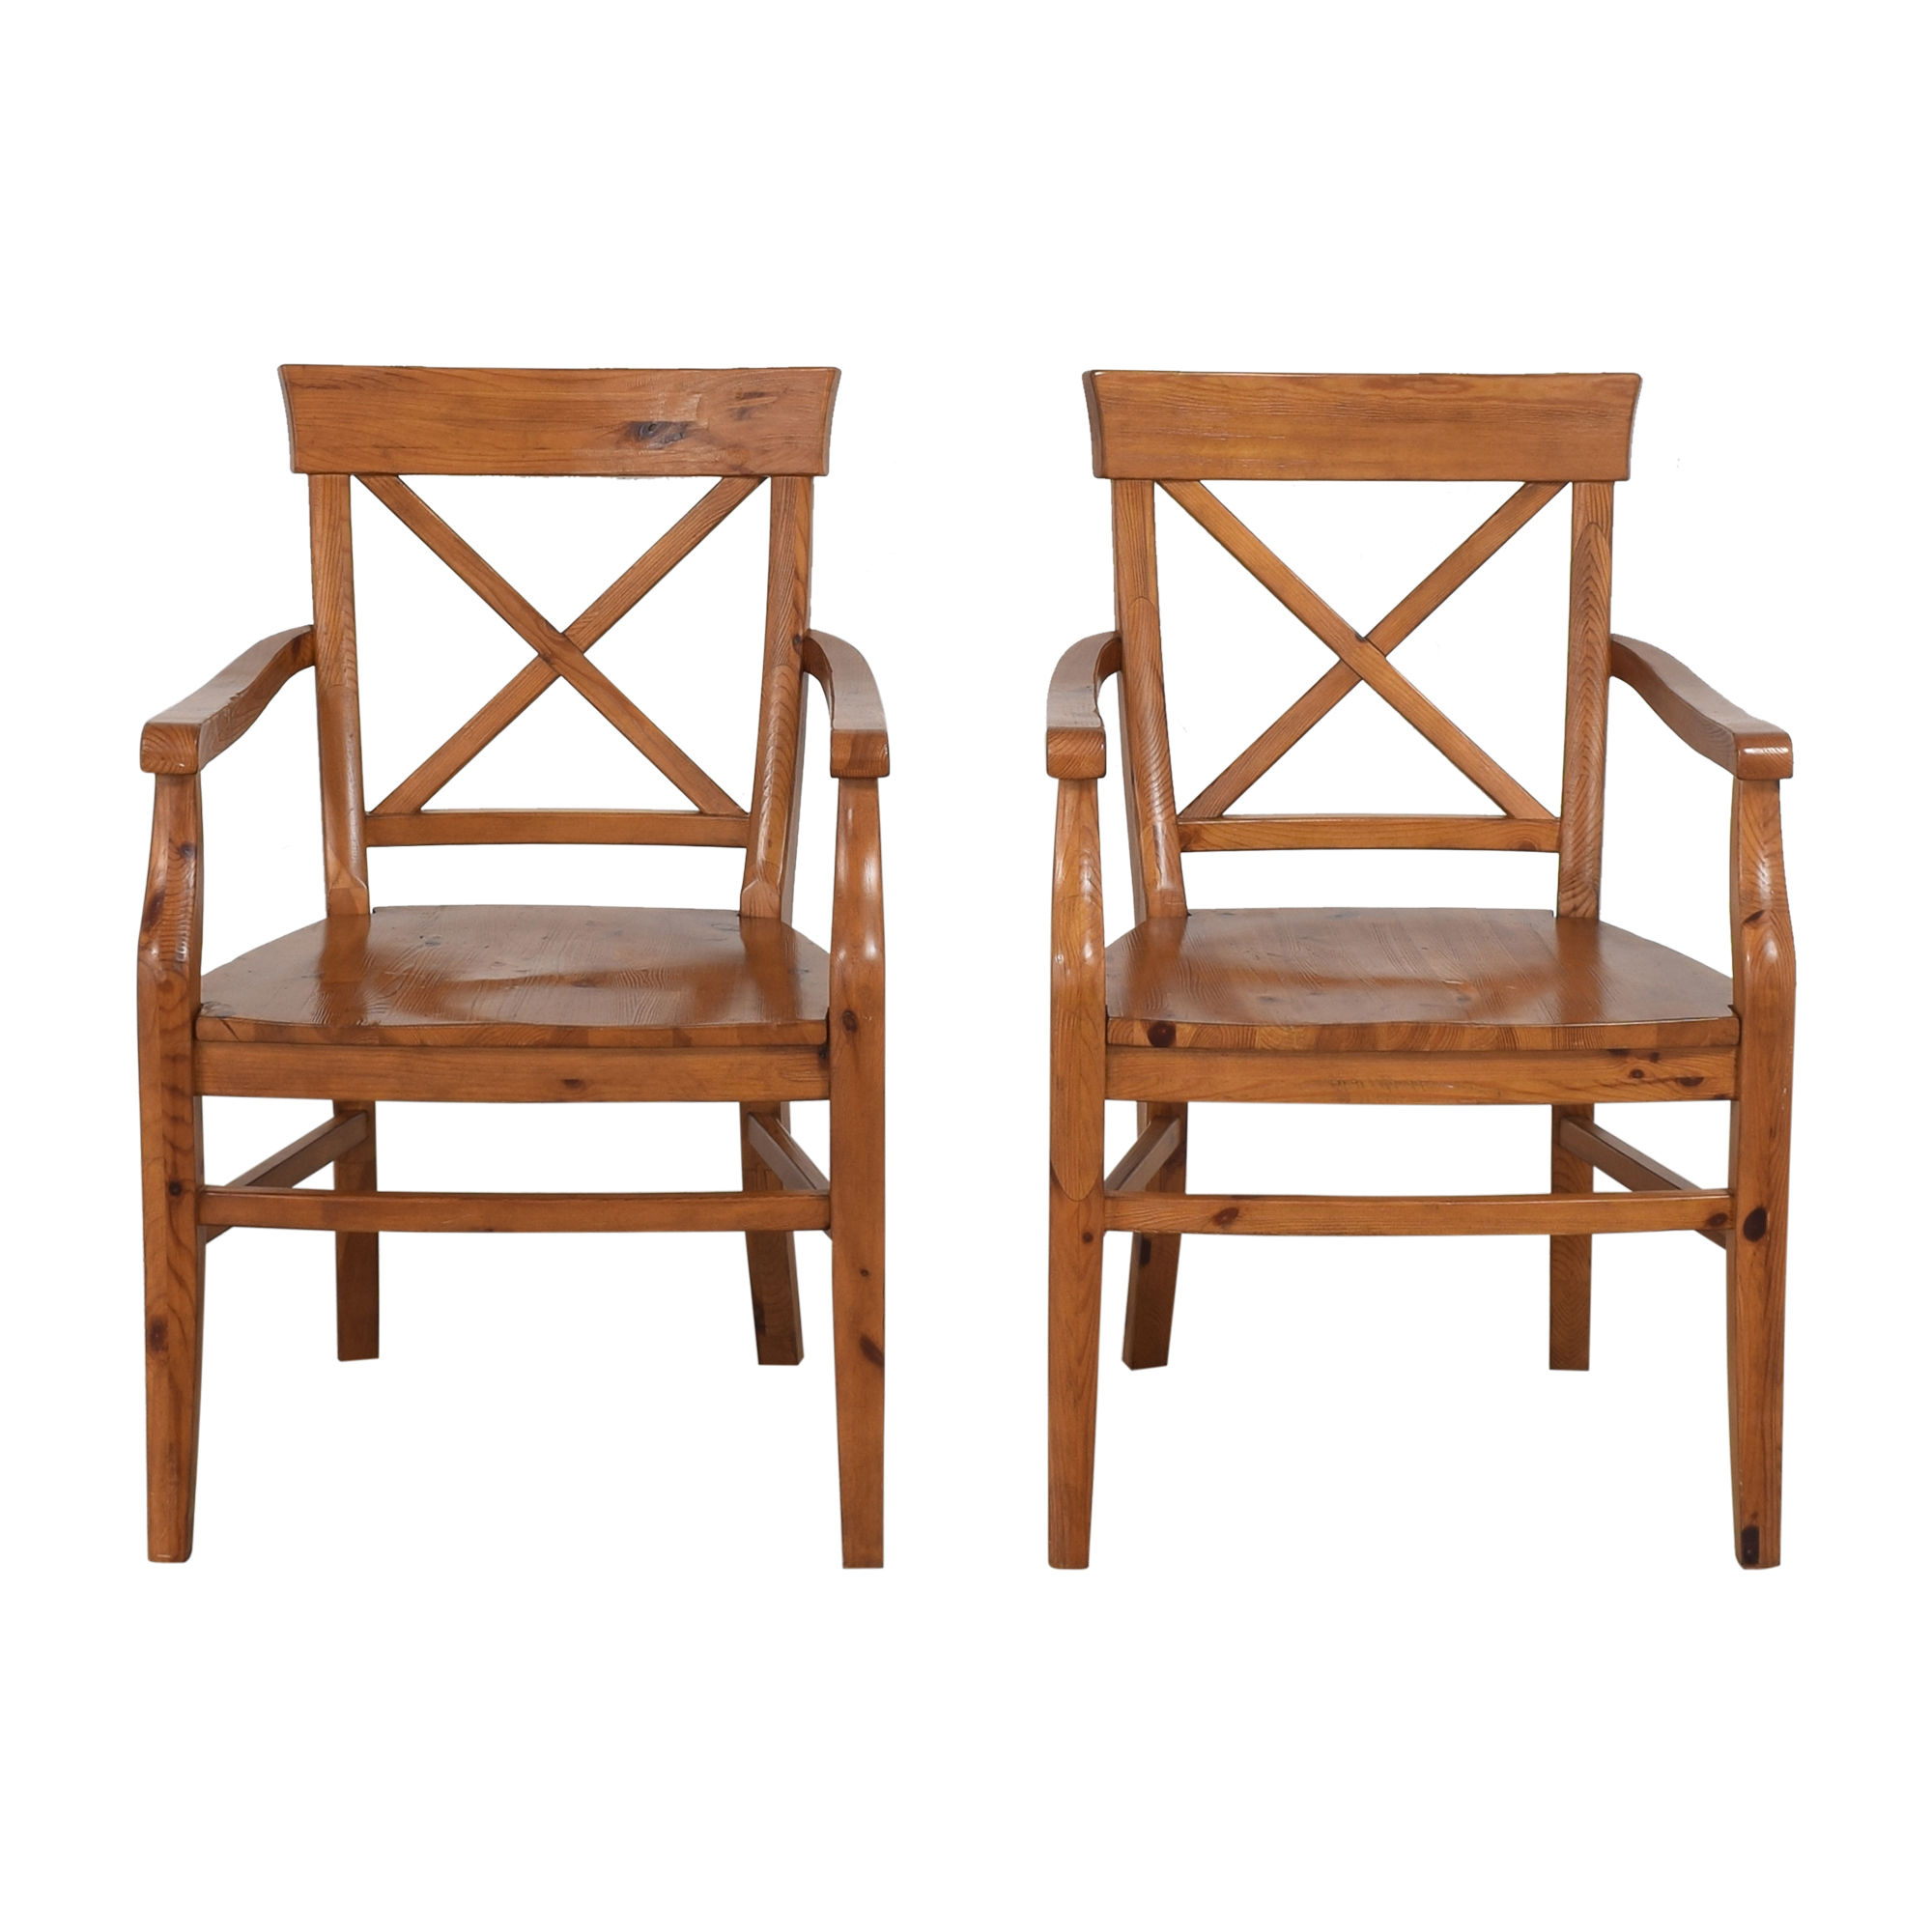 Pottery Barn Pottery Barn Aaron Dining Arm Chairs used